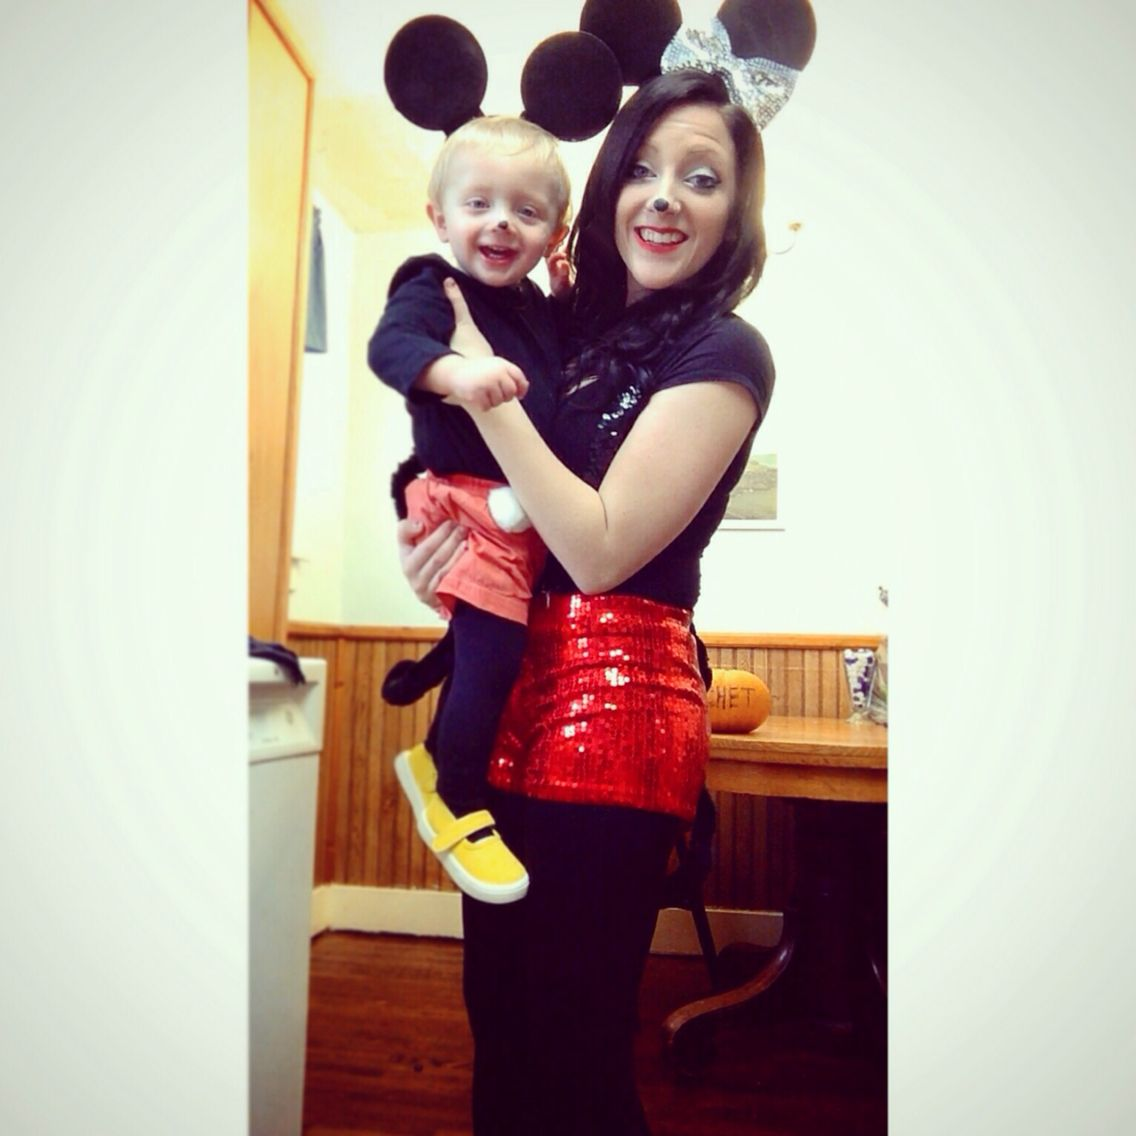 Mother and son halloween costume #mickeyandminniemouse #DIY HALLOWEENCOSTUME  sc 1 st  Pinterest & Mother and son halloween costume #mickeyandminniemouse #DIY ...